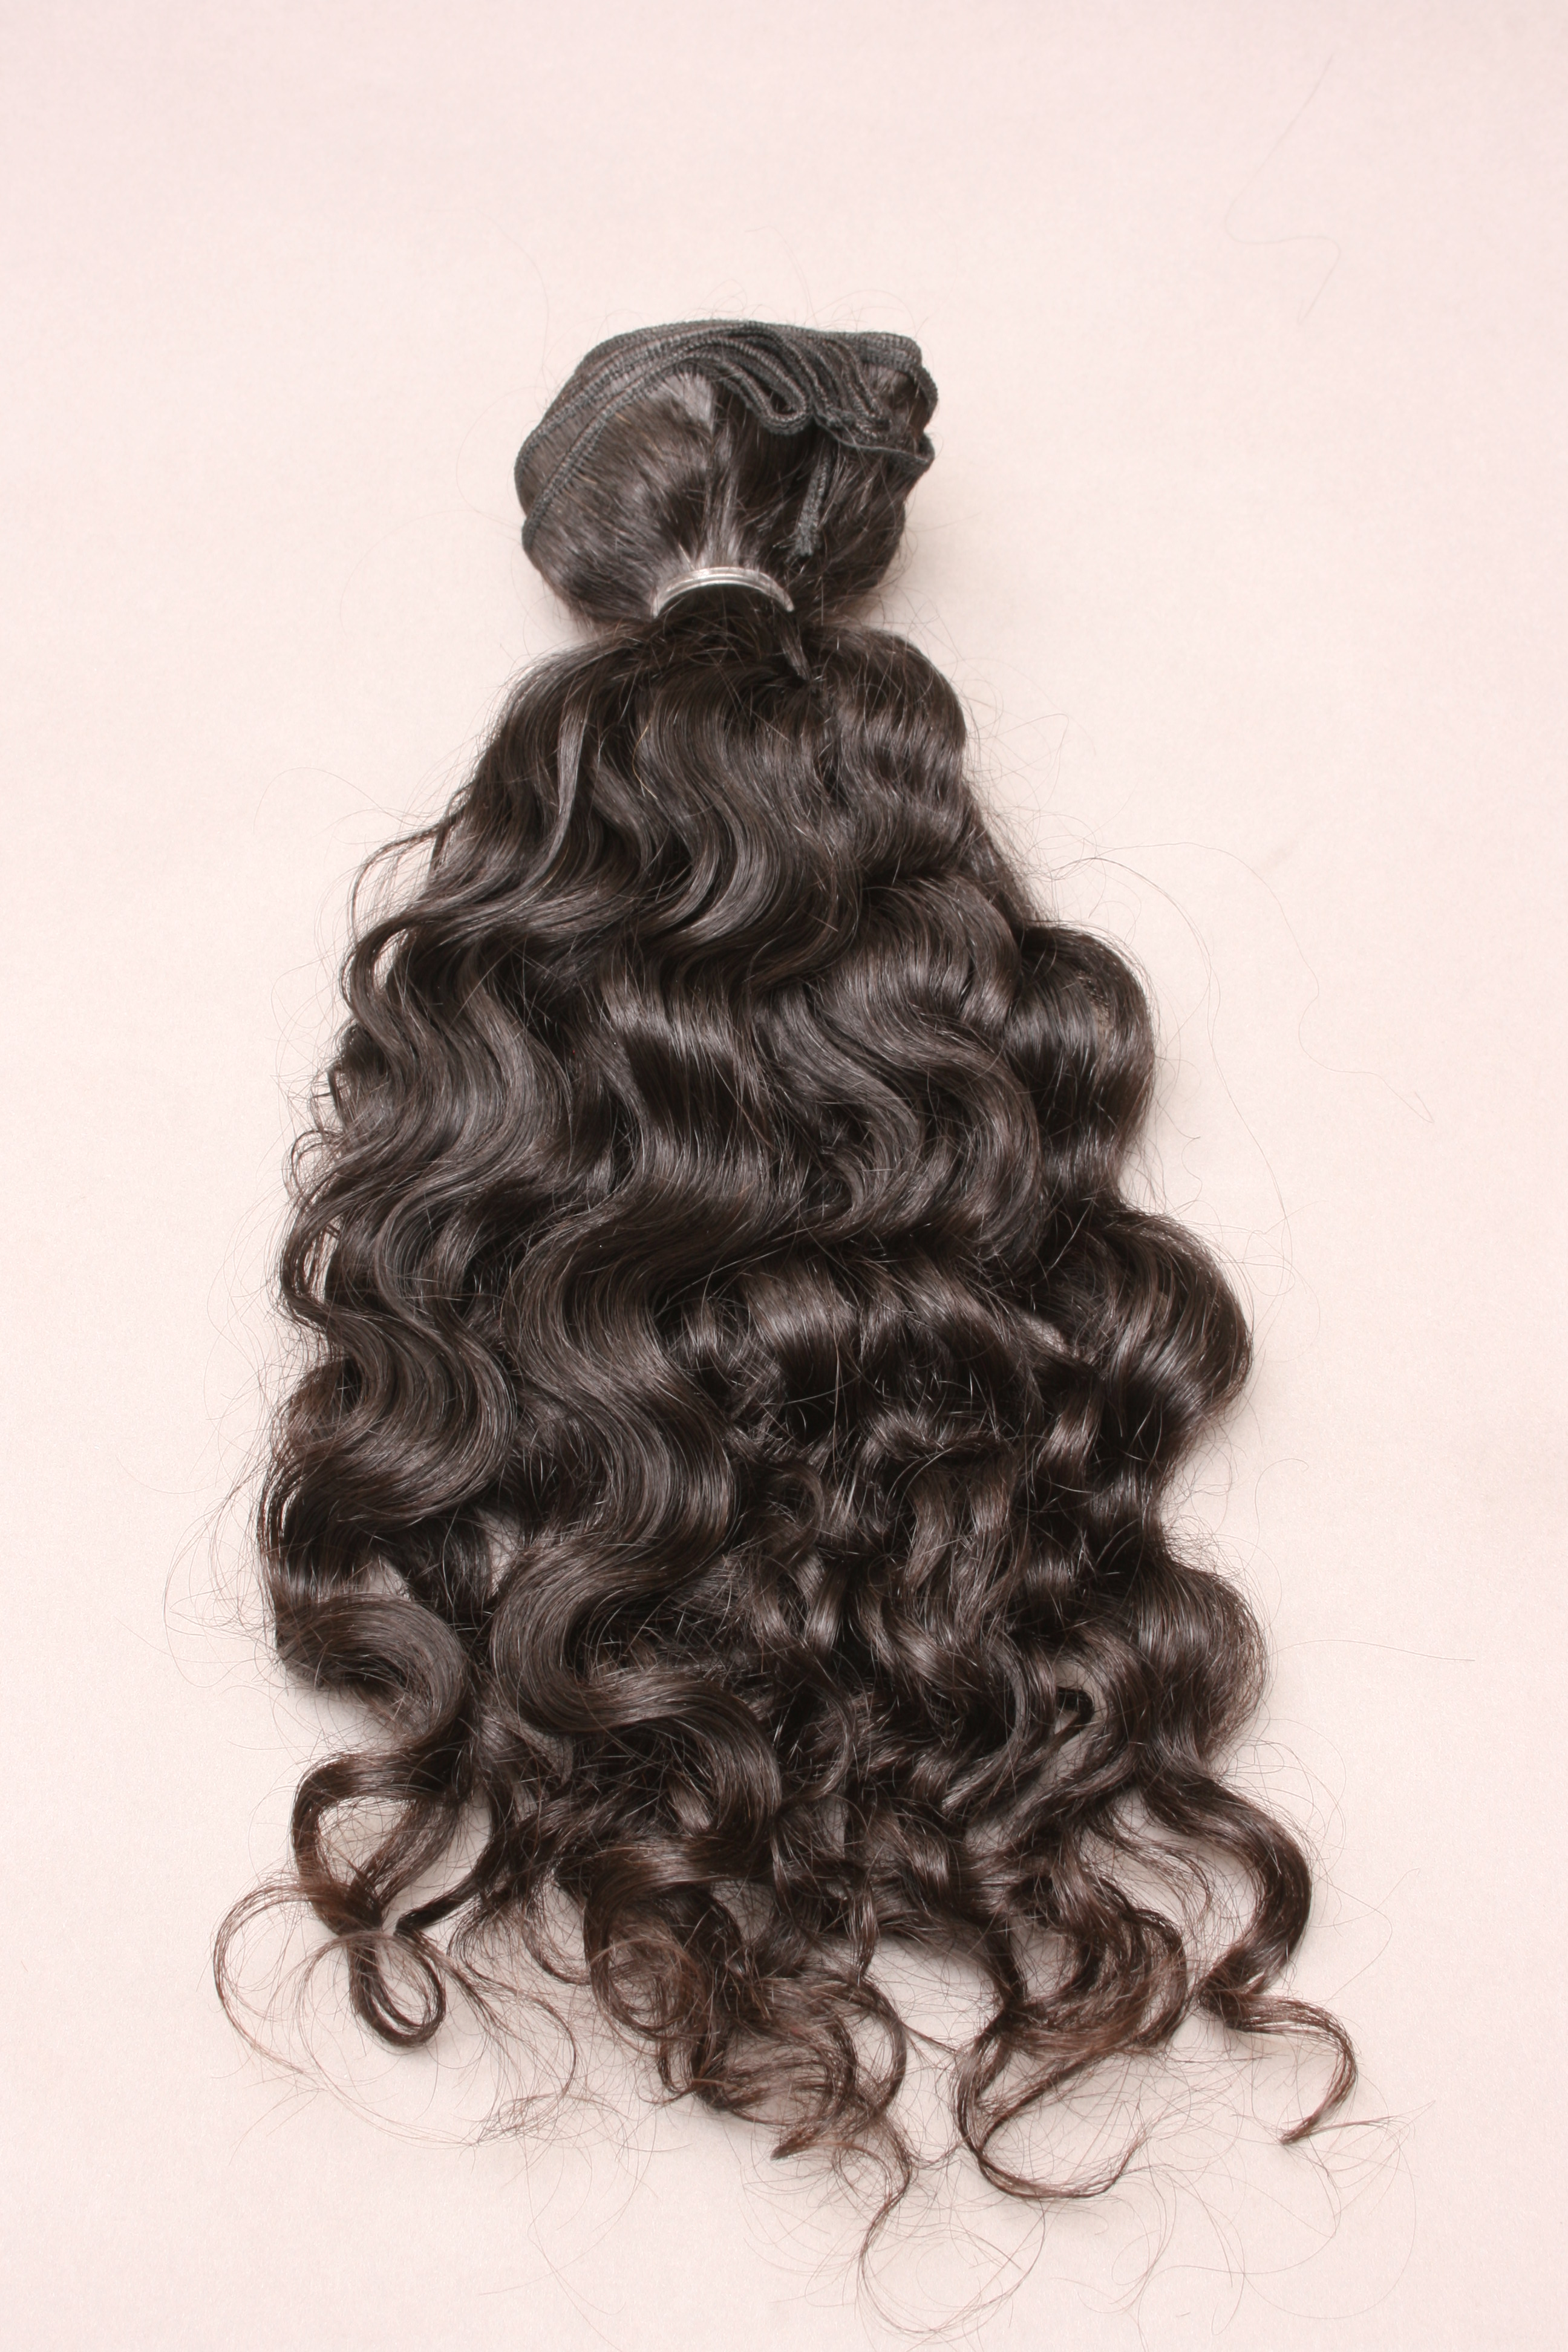 Indian Curly Hair Samples